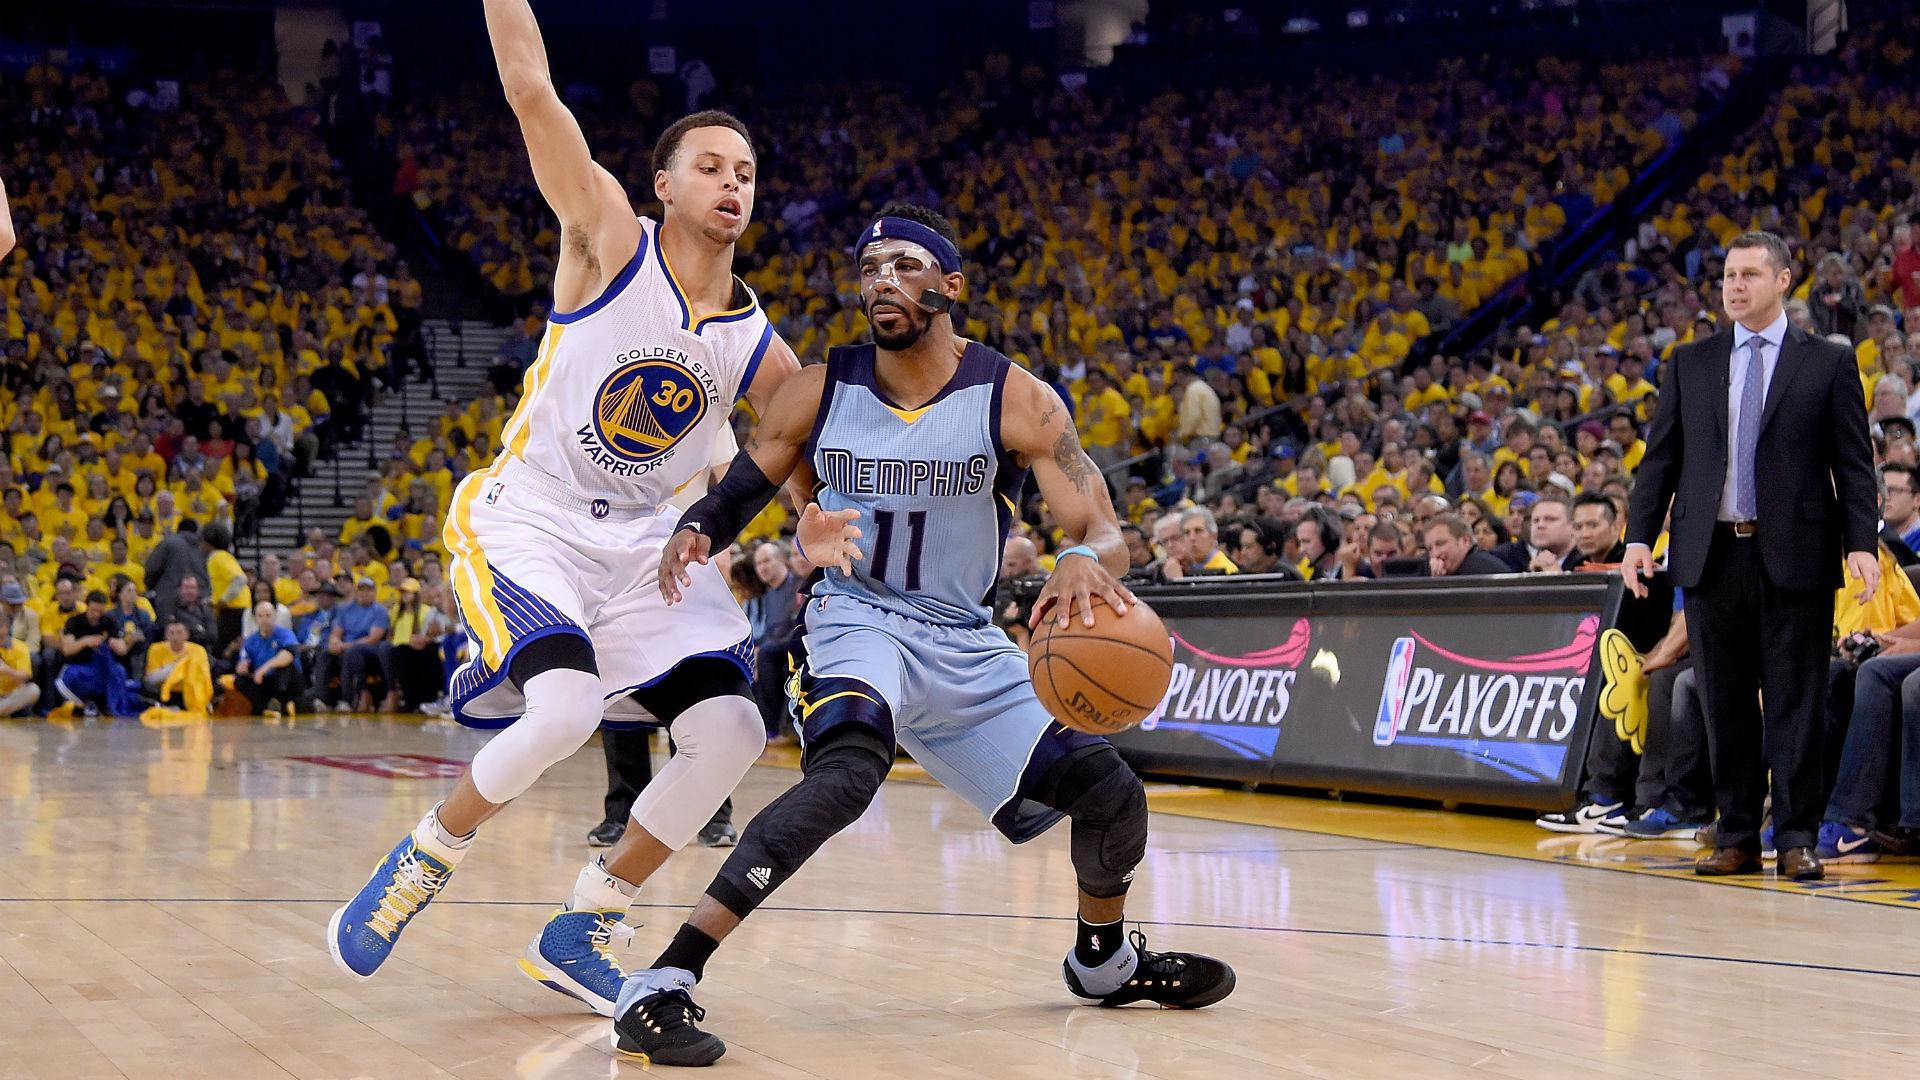 Mike Conley's return keys Grizzlies' Game 2 win over Warriors | NBA ...